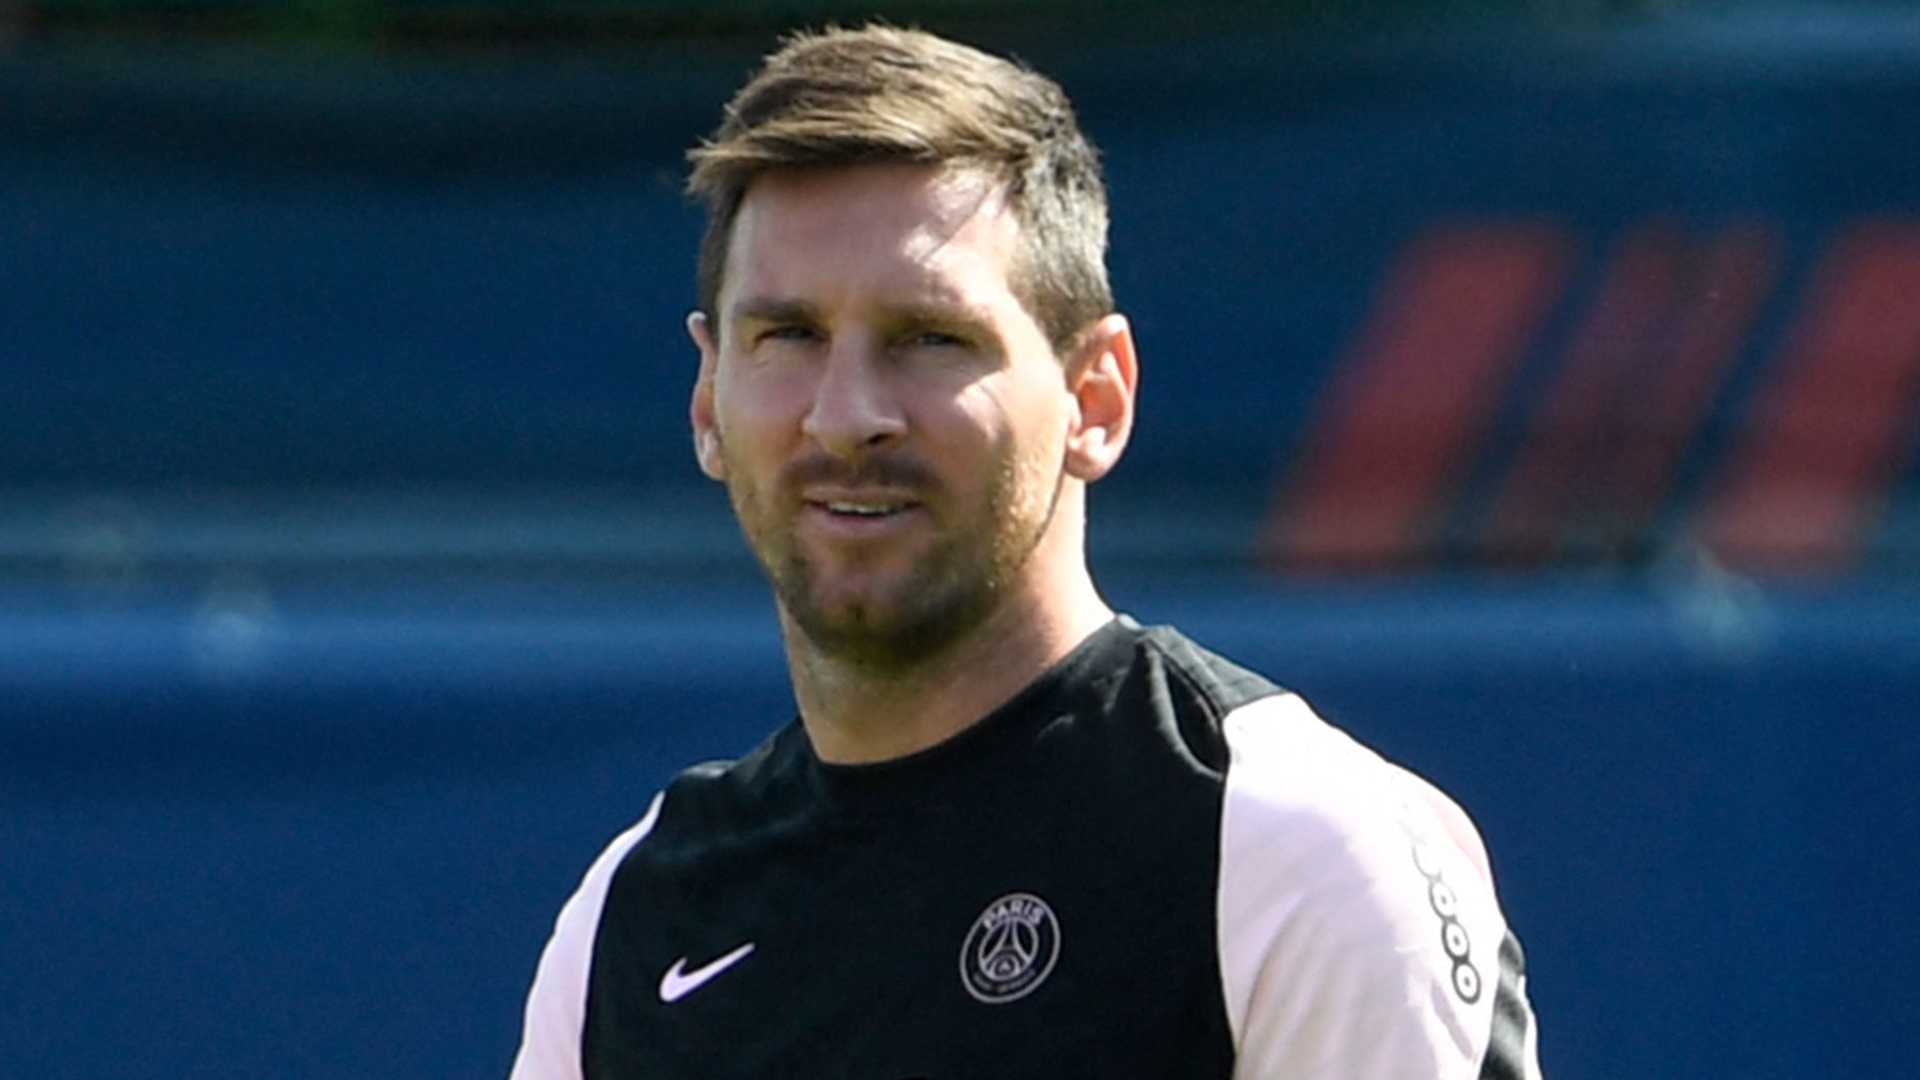 Transfer news and rumours LIVE: Messi in talks to finish career at Inter Miami